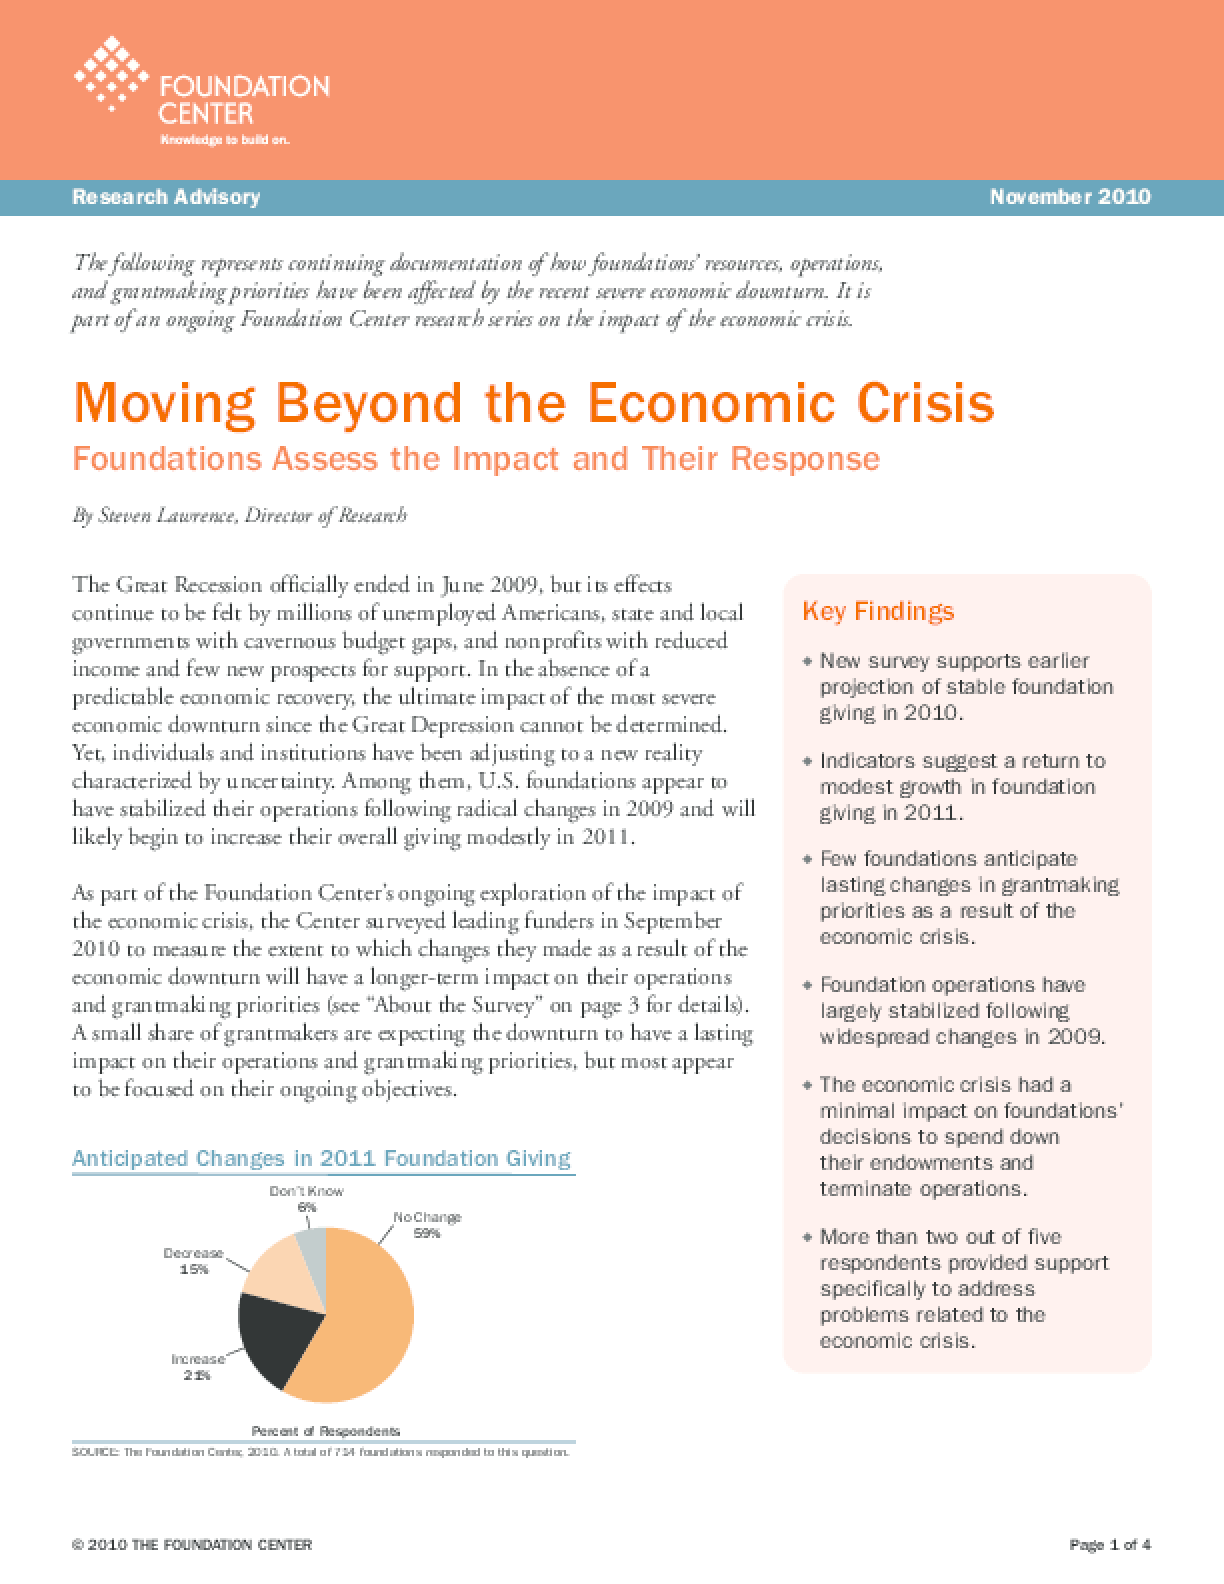 Moving Beyond the Economic Crisis: Foundations Assess the Impact and Their Response